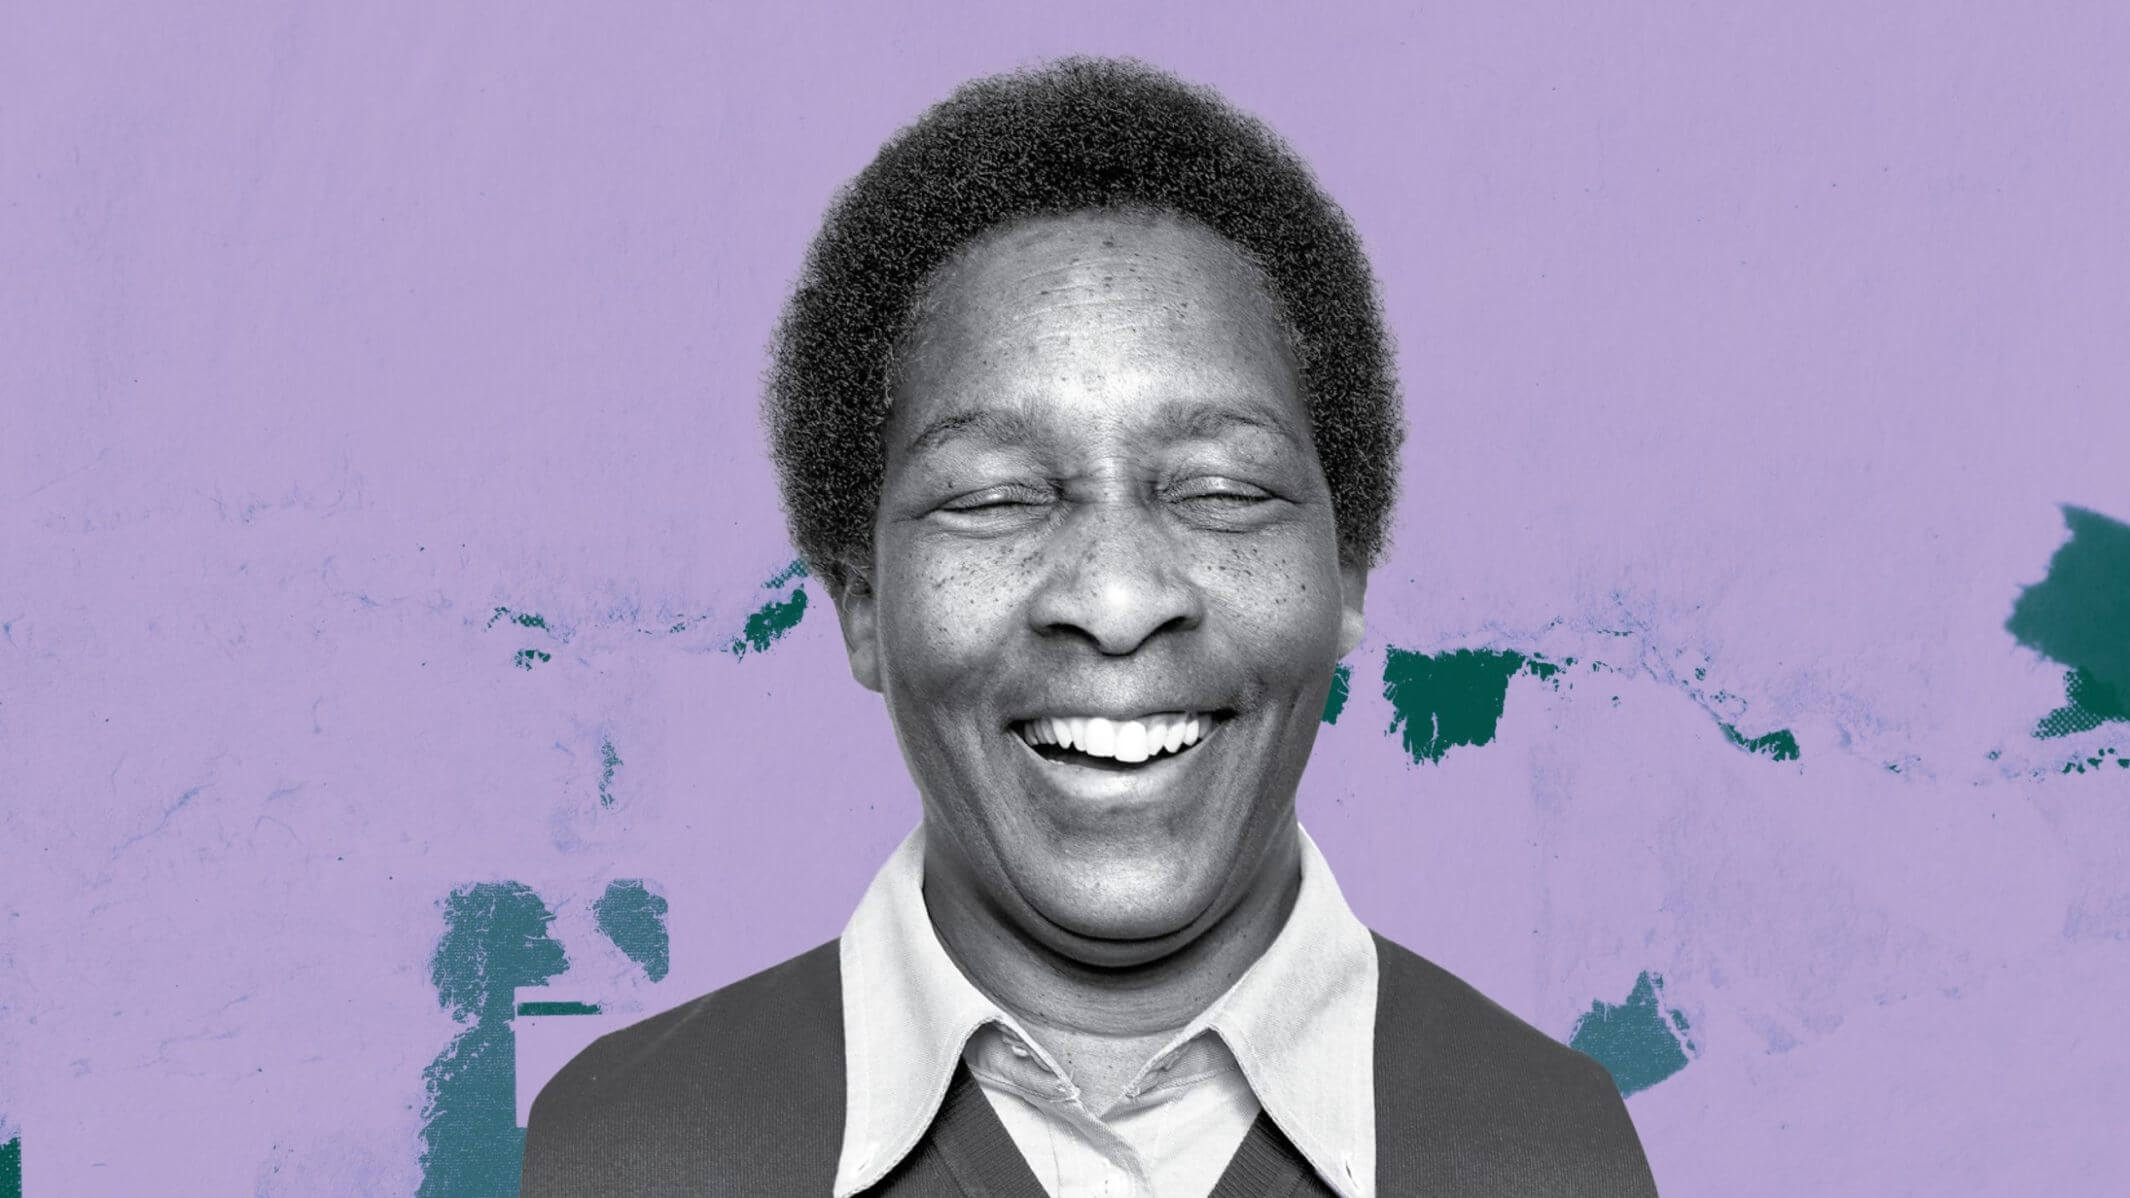 An Image of Loretta Claiborne smiling with her eyes closed. She is in black and white but there is a colorful background behind her.